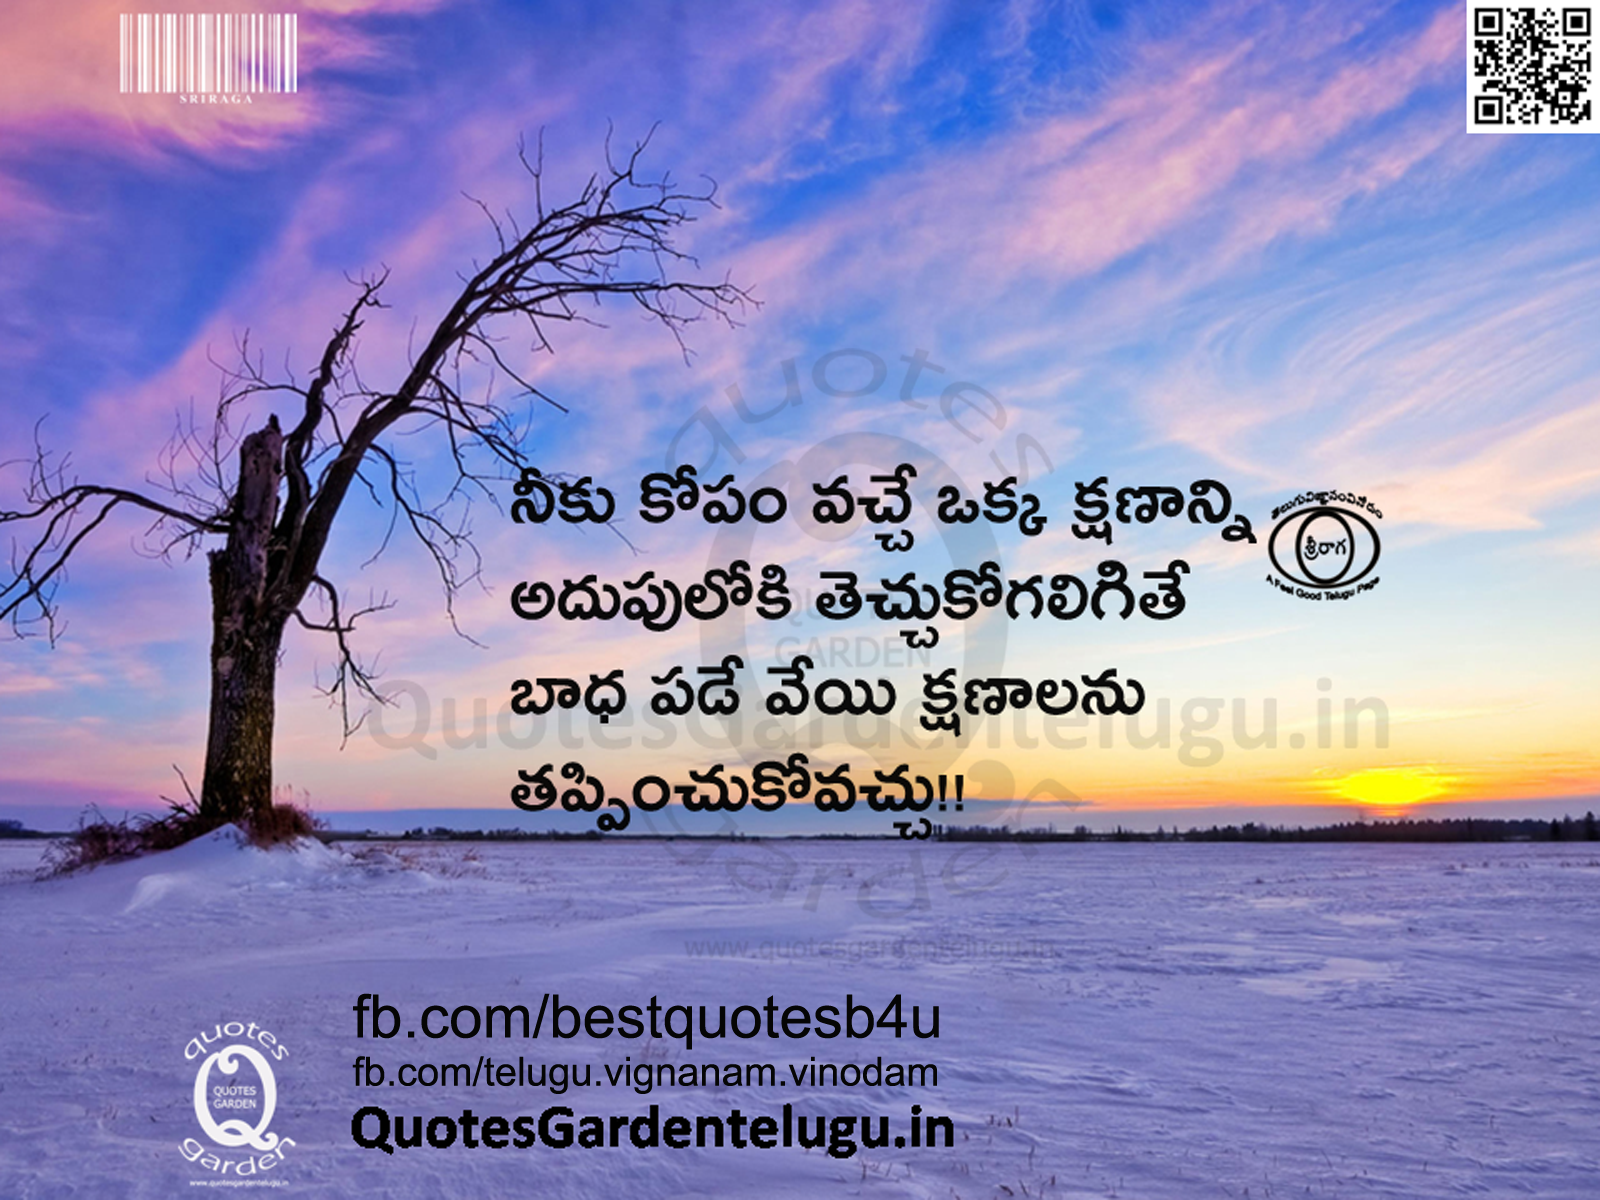 Telugu Attitude Change self confidence life inspirational quotes with images